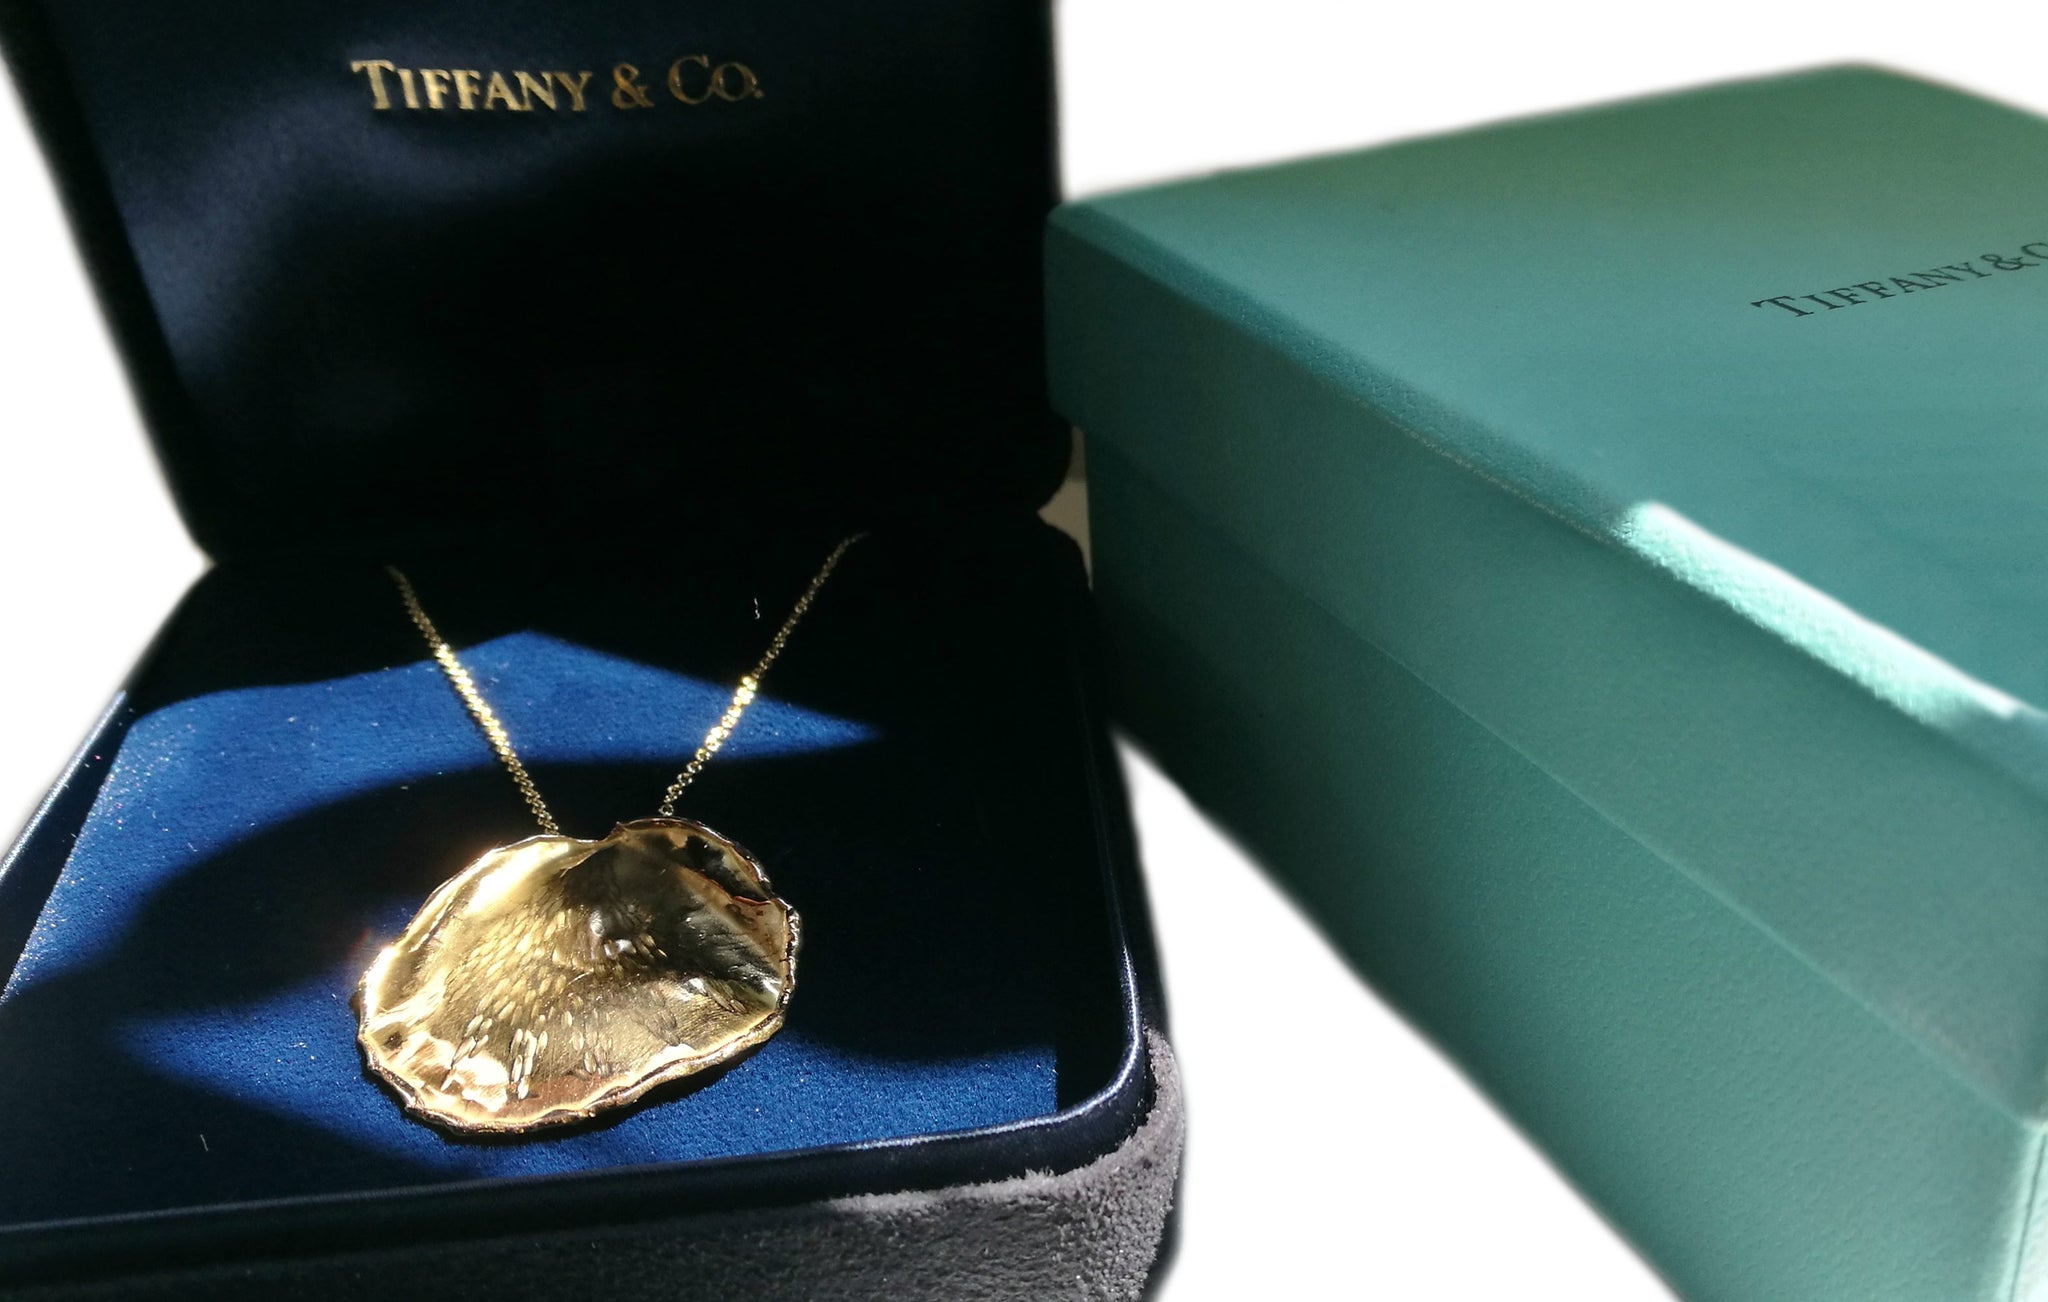 Tiffany & Co. 1979 Angela Cummings 18k Yellow Gold Rose Petal Pendant / Necklace